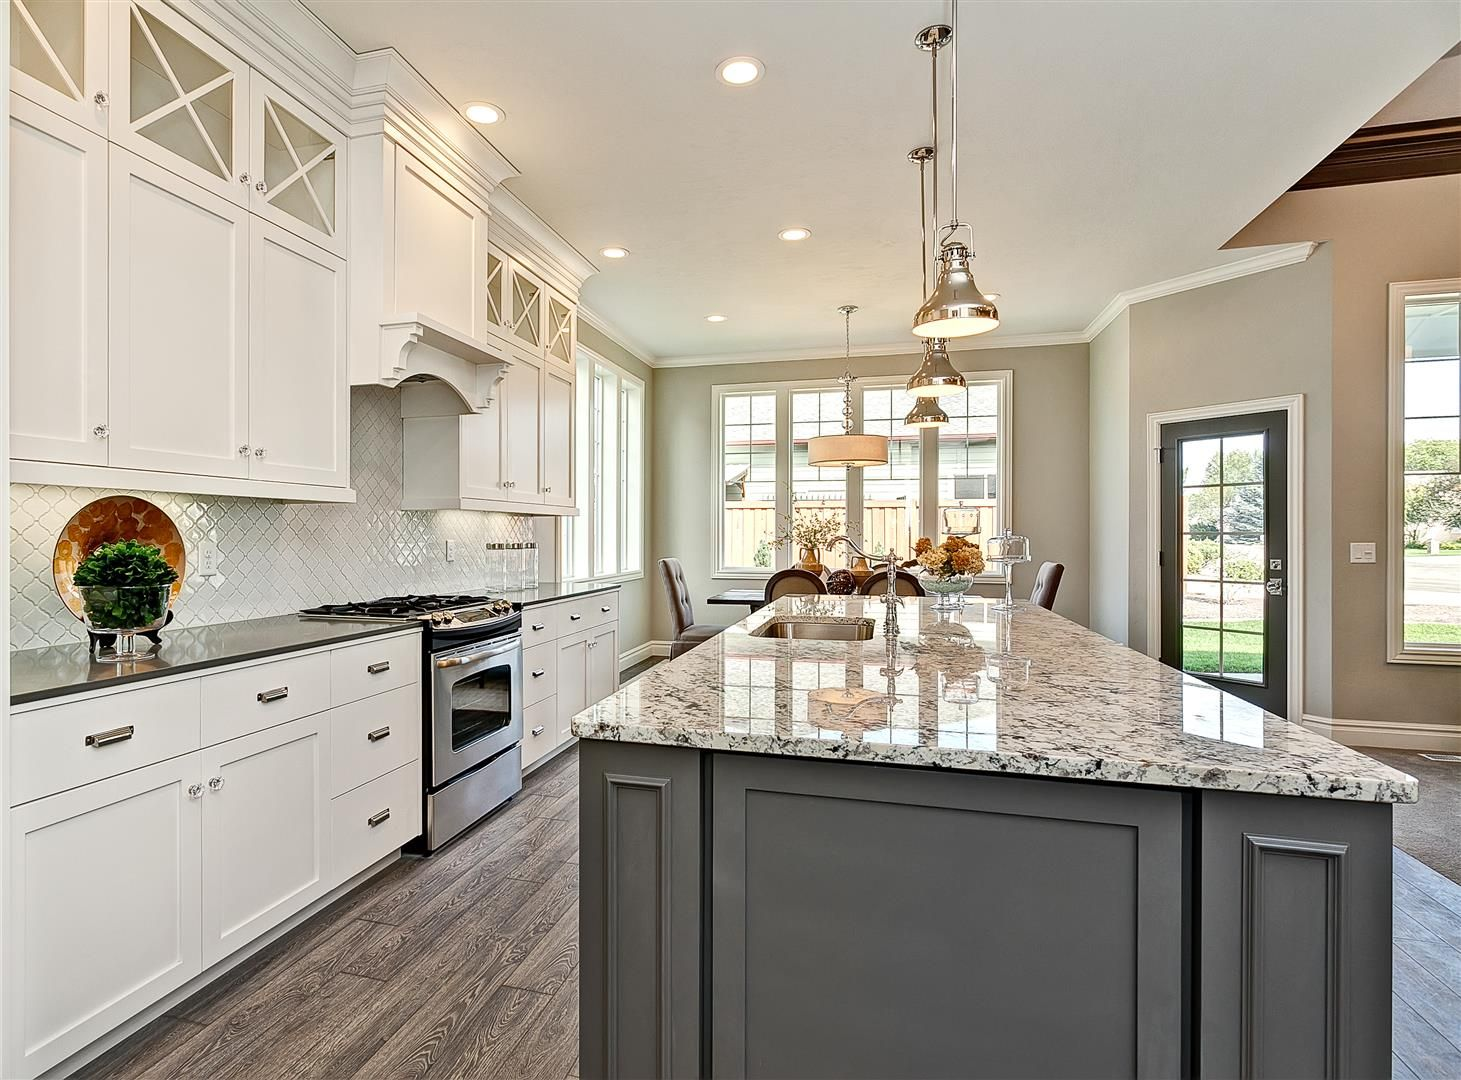 White kitchen with grey accent island. Chrome